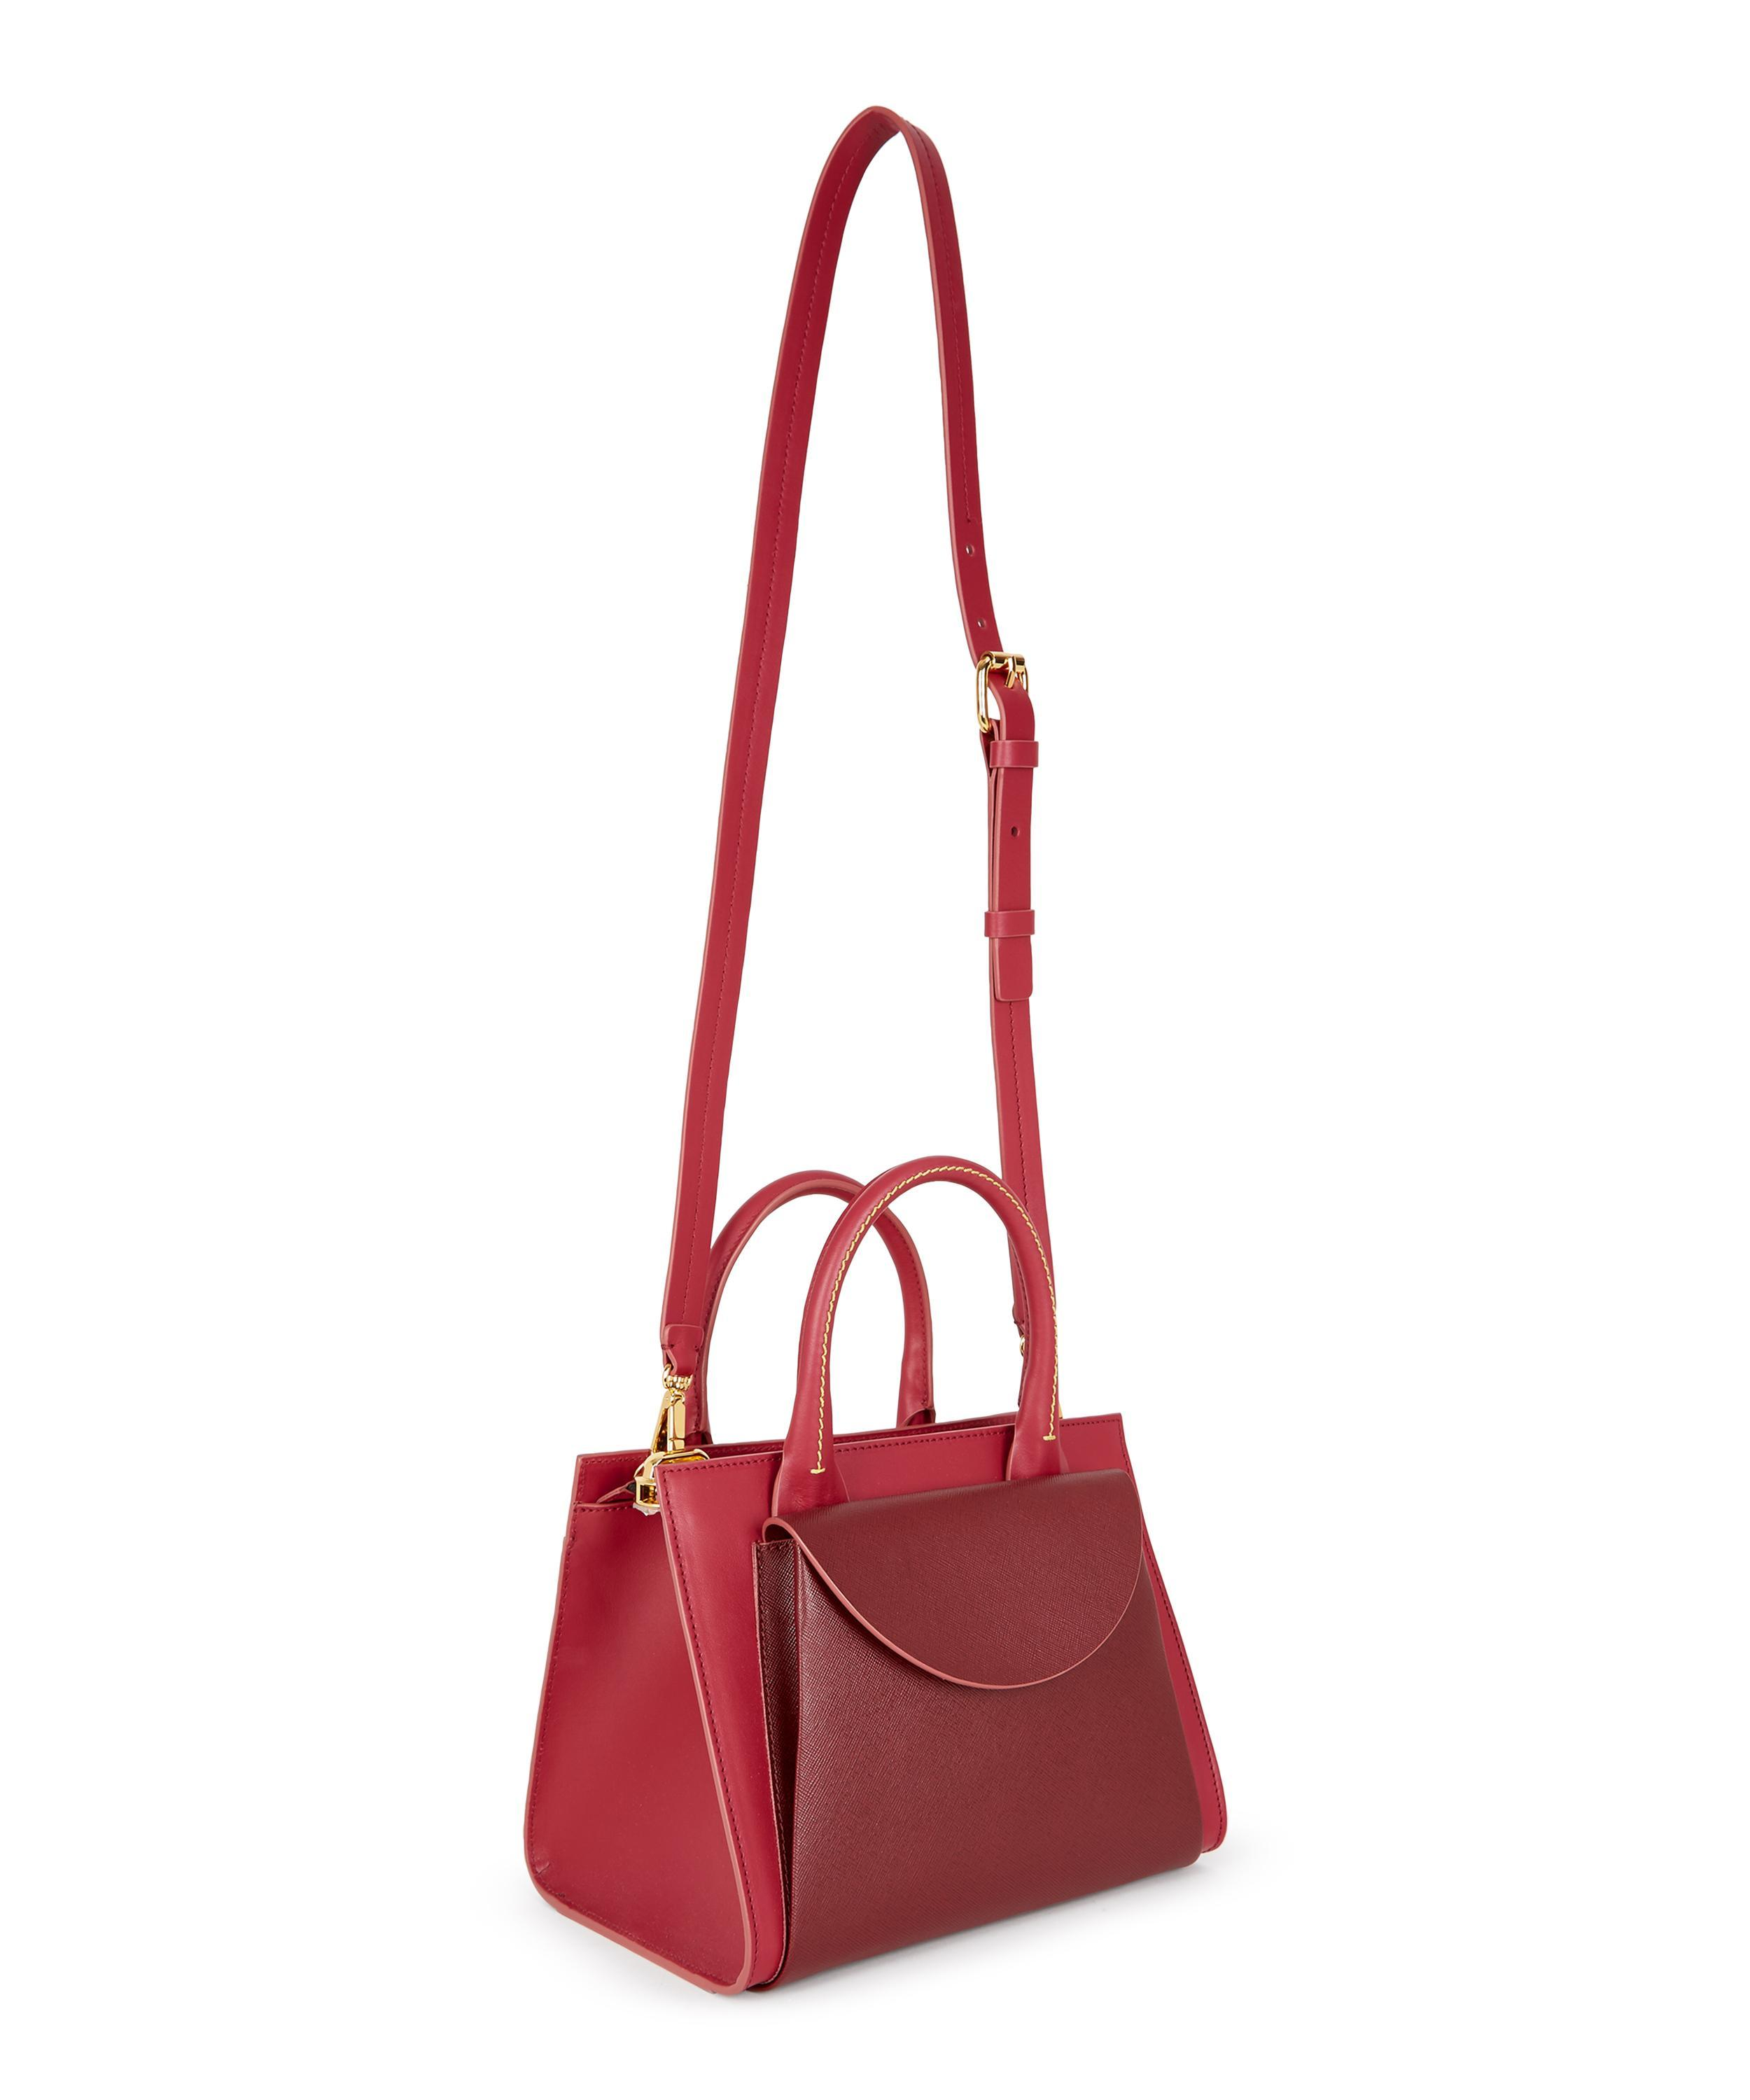 6c69ec4d5b14 Lyst - Marni Law Leather Shoulder Bag in Red